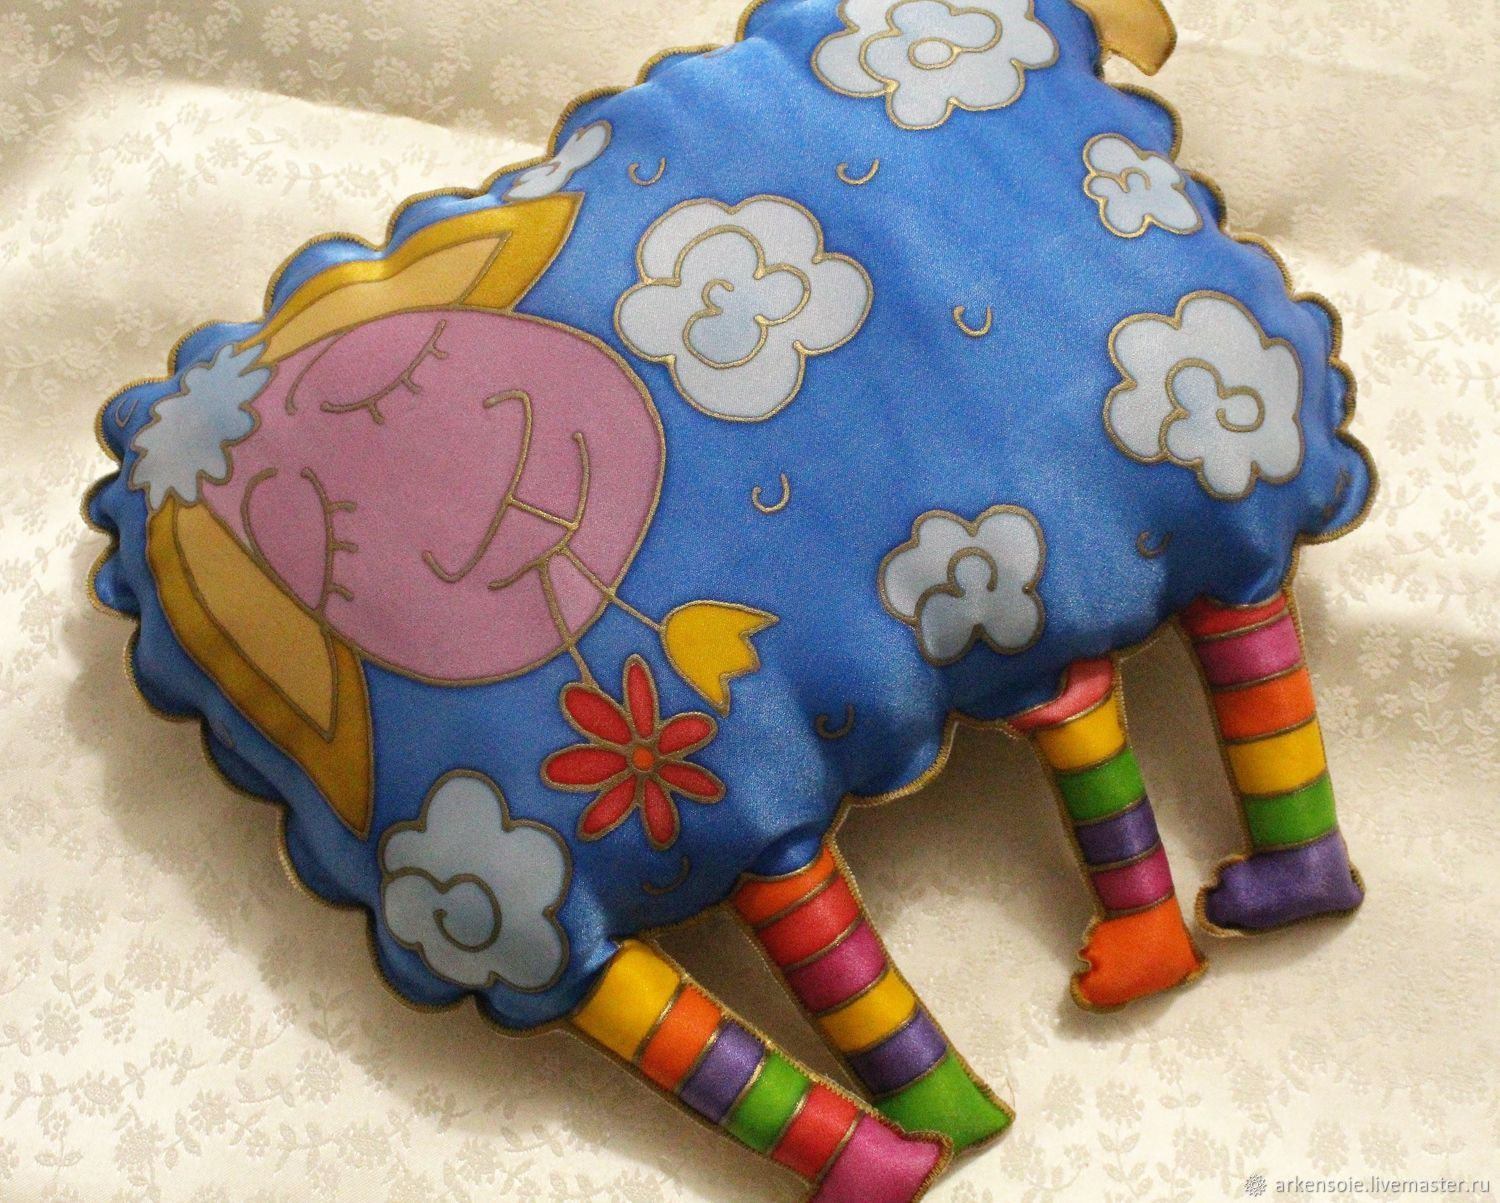 Home Textiles & Carpets handmade. Livemaster - handmade. Buy Aries pillow toy ,hand-painted, 35h34 cm, a gift to the rams.